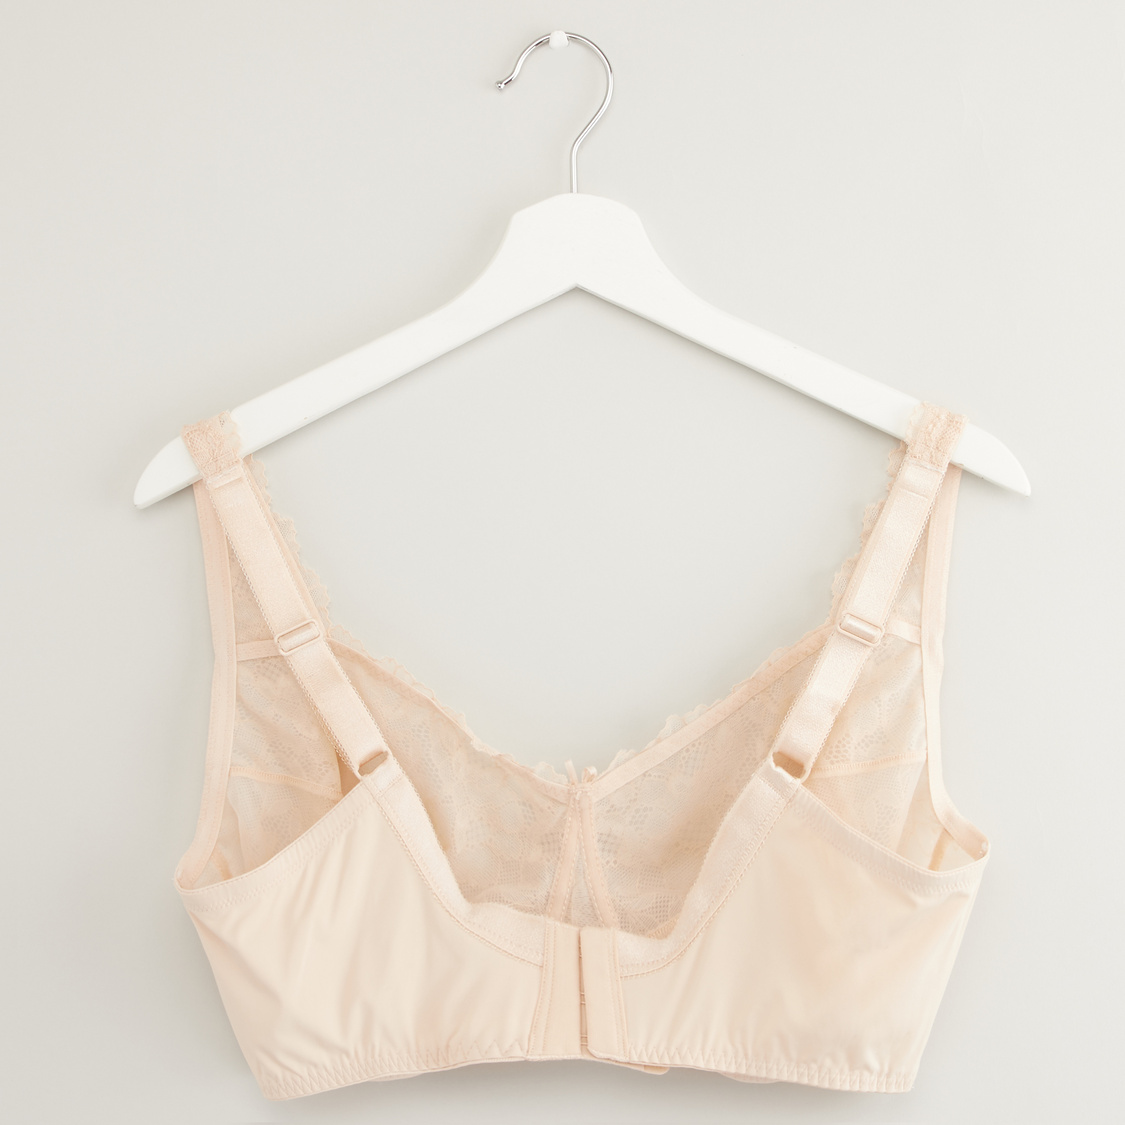 Lace Bra with Hook and Eye Closure